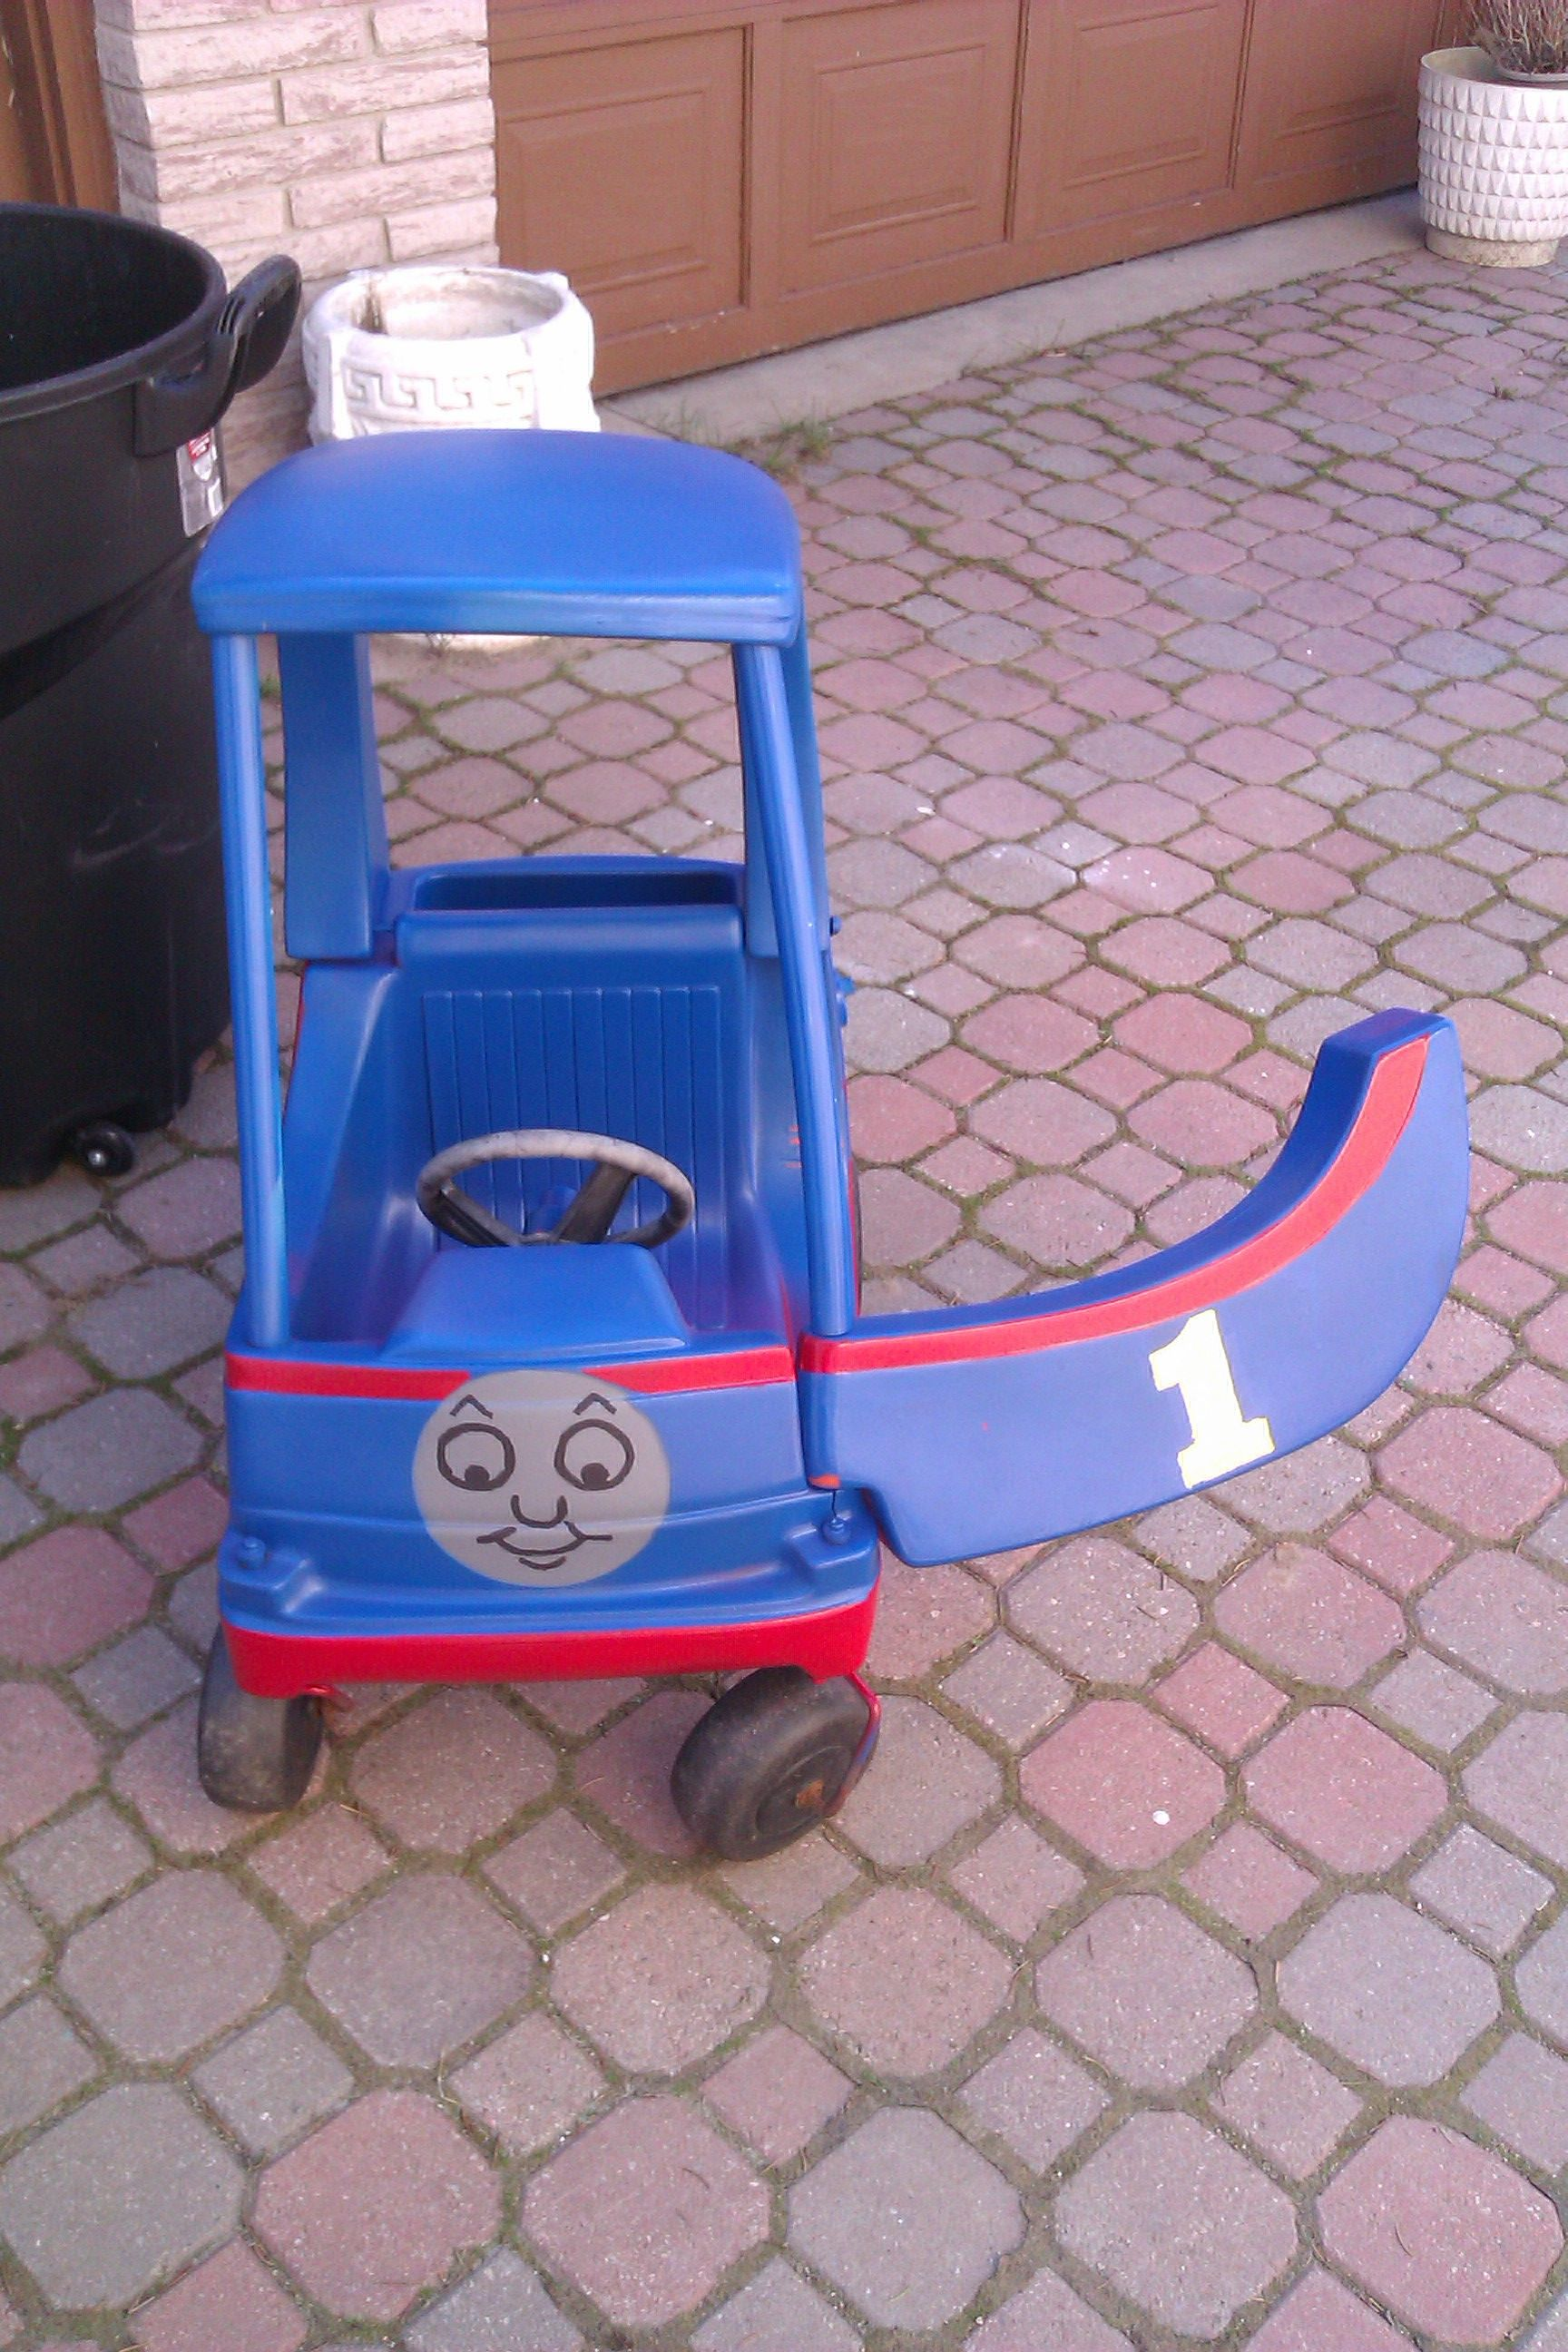 Little tikes thomas the train bed - Pimped Out Little Tykes Cozy Coupe Thomas The Tank Engine